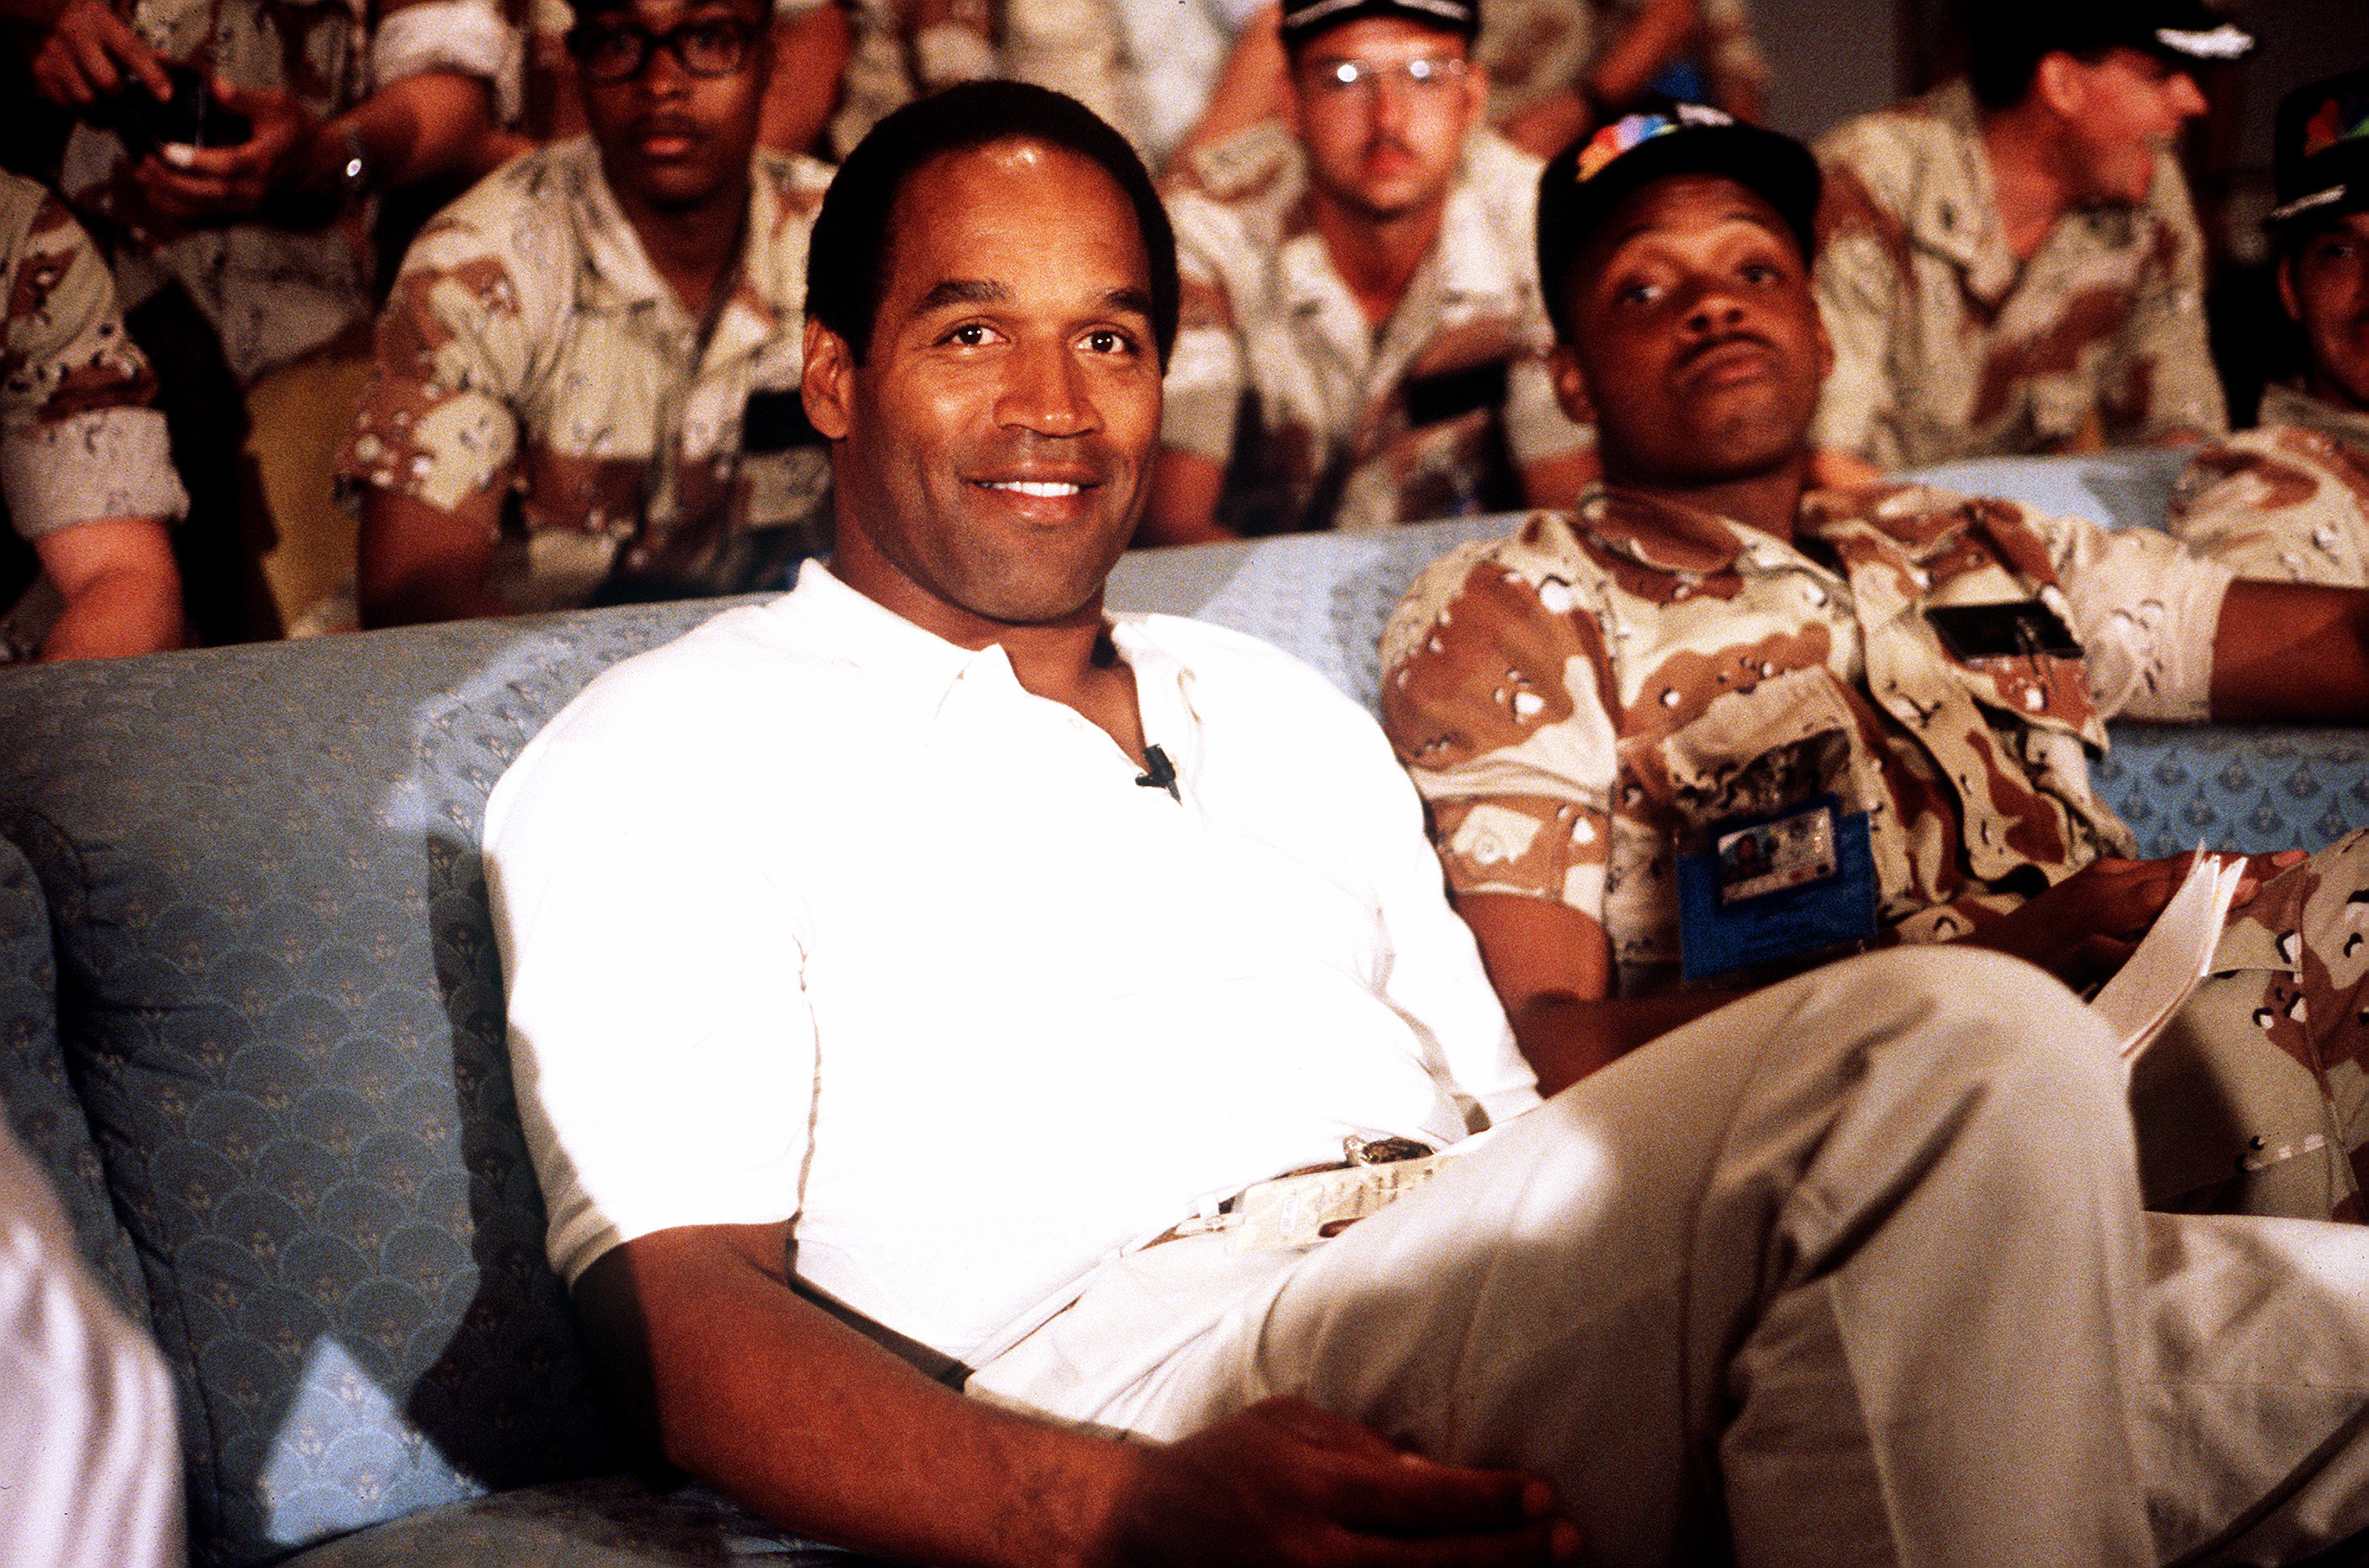 Nicole Brown Simpson and Ron Goldman murdered